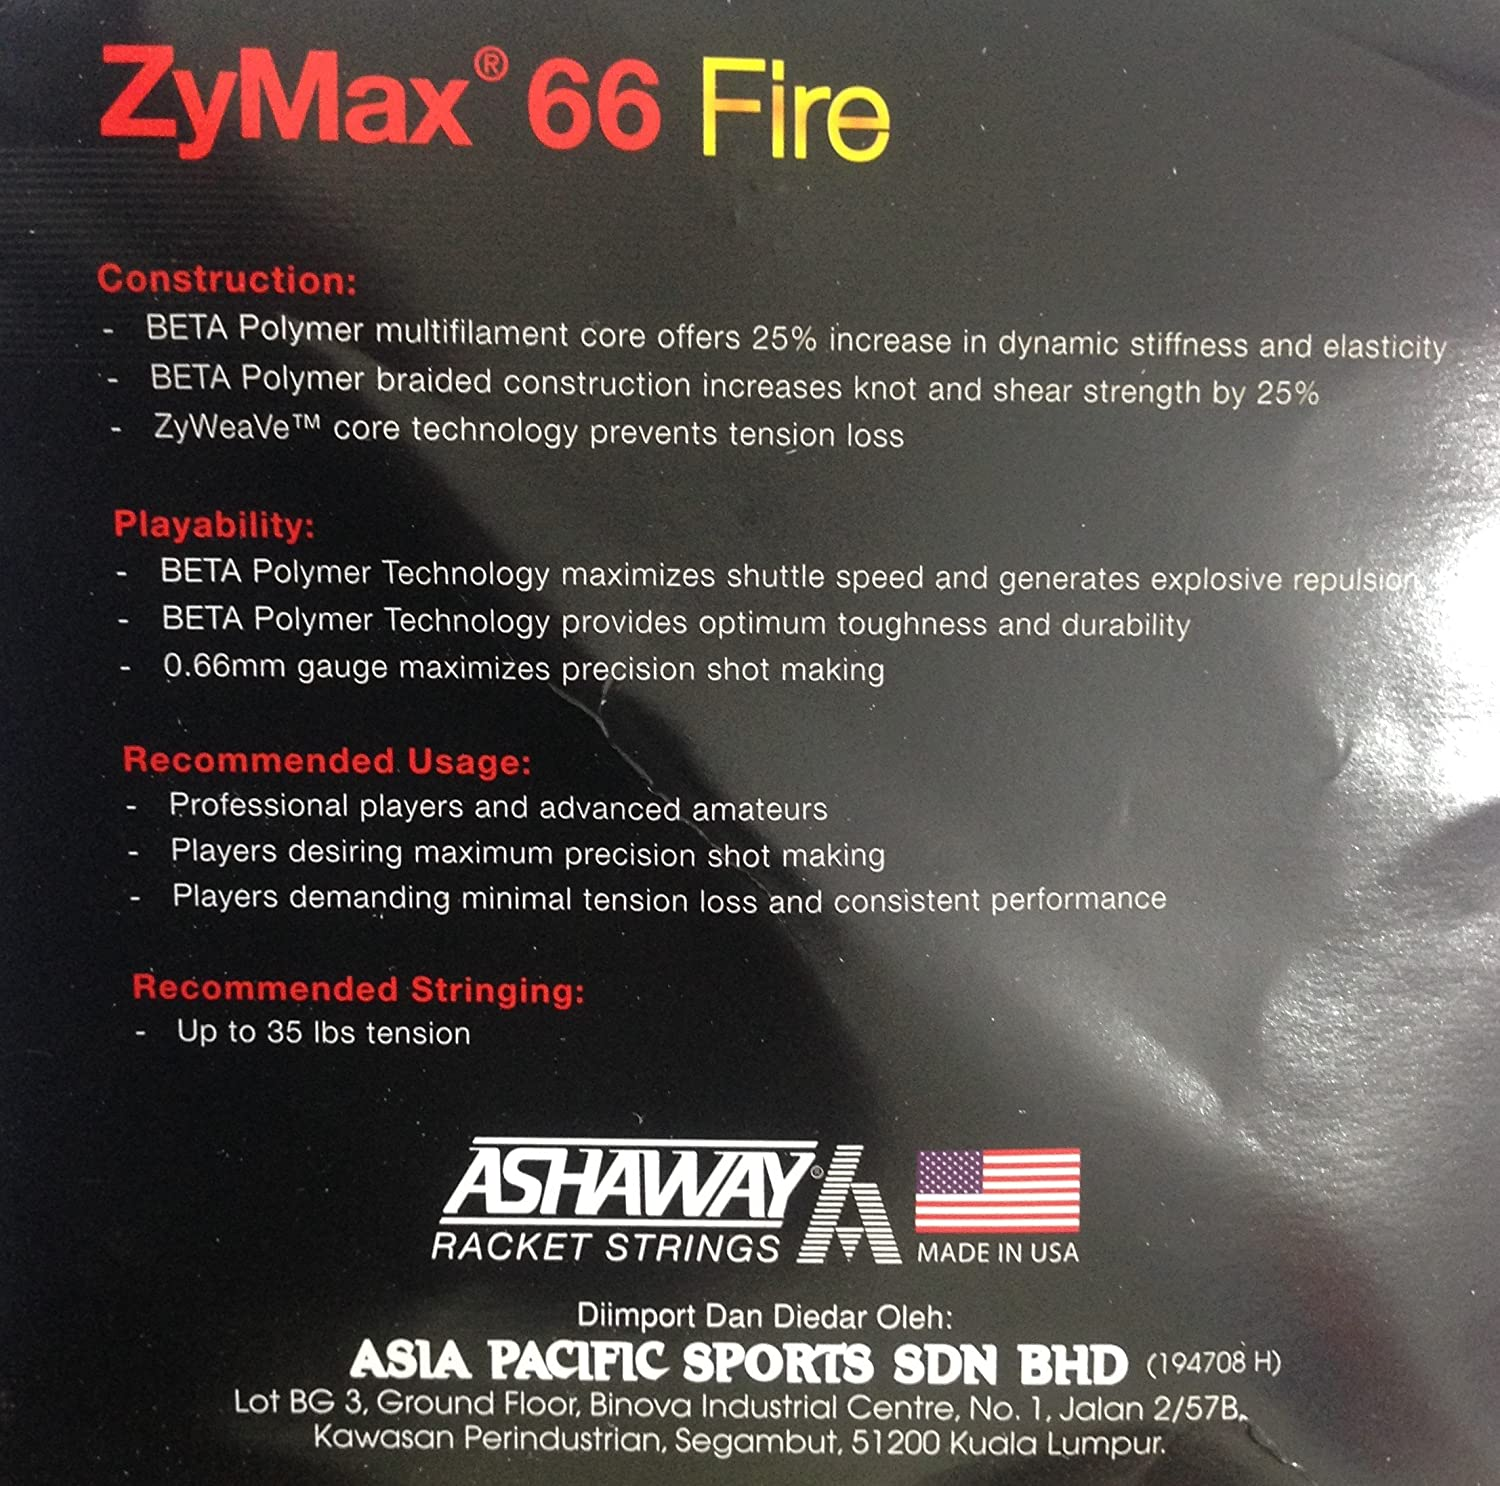 3bc9fa9f9 Buy Ashaway Badminton String Zymax 66 Fire Online at Low Prices in India -  Amazon.in